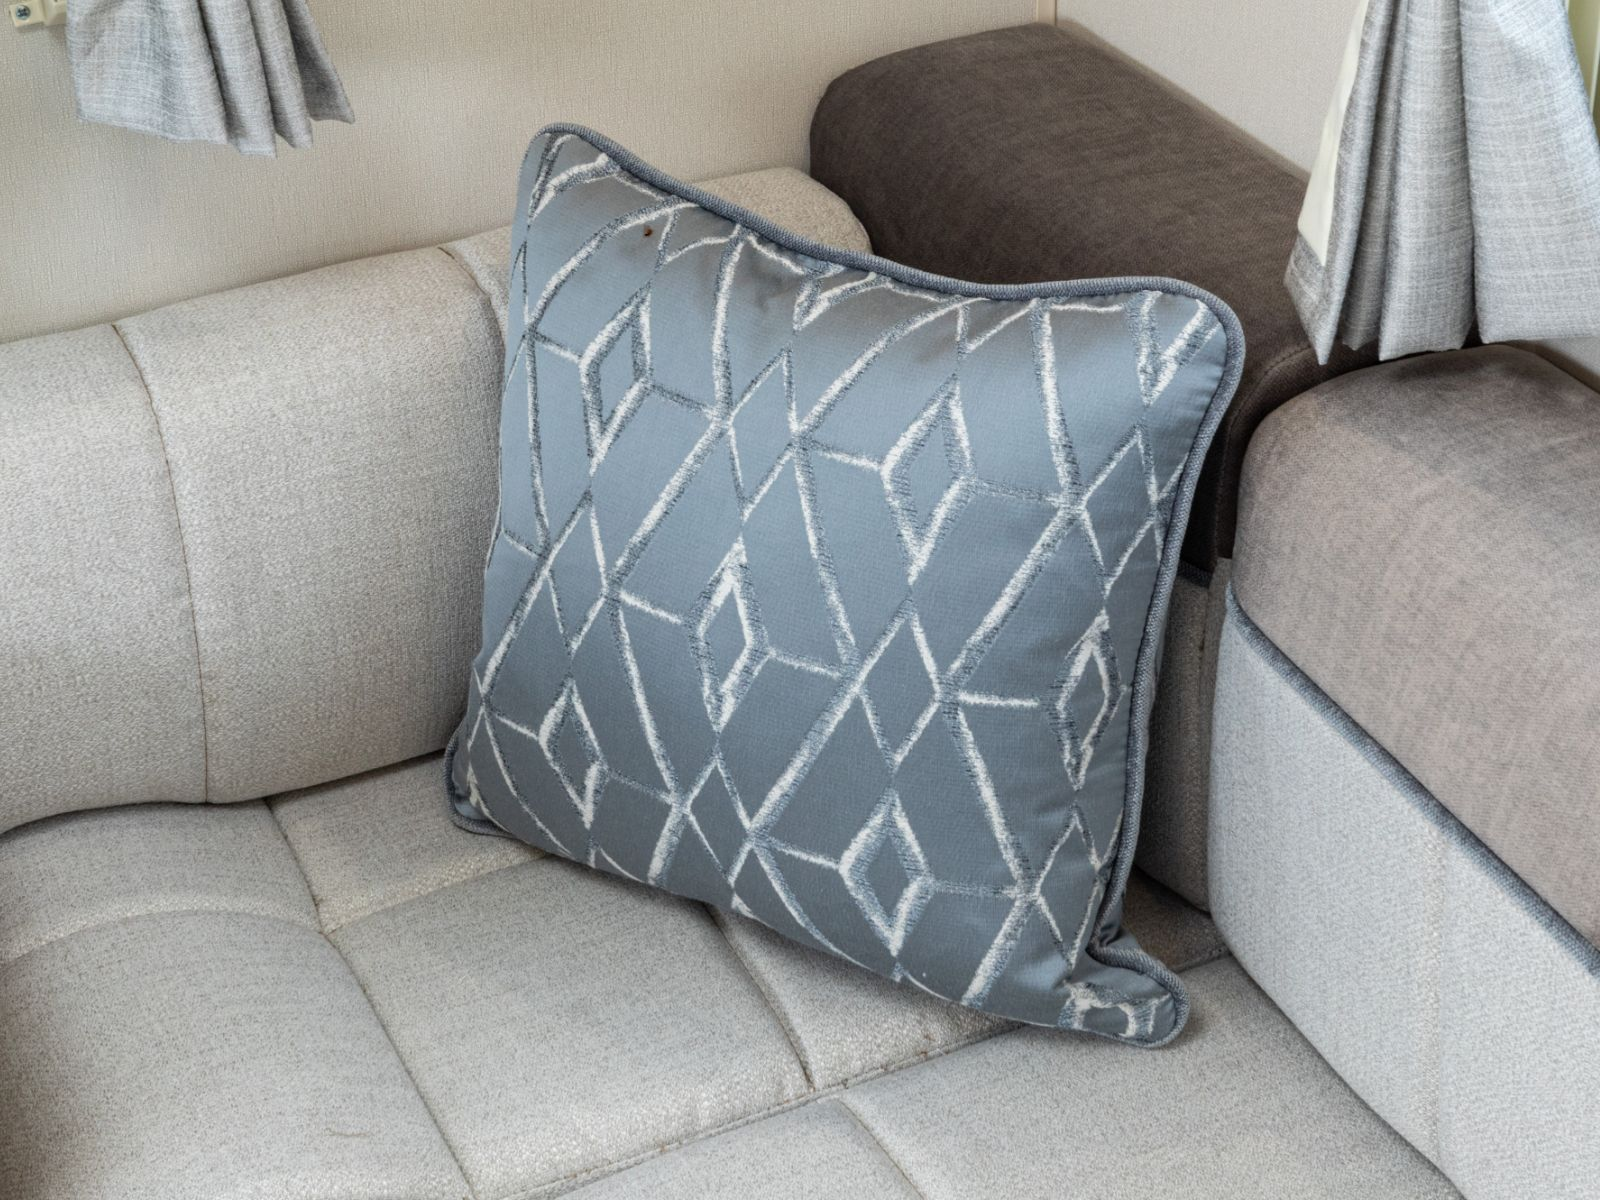 ActivCare upholstered sofa decorated with cushions'